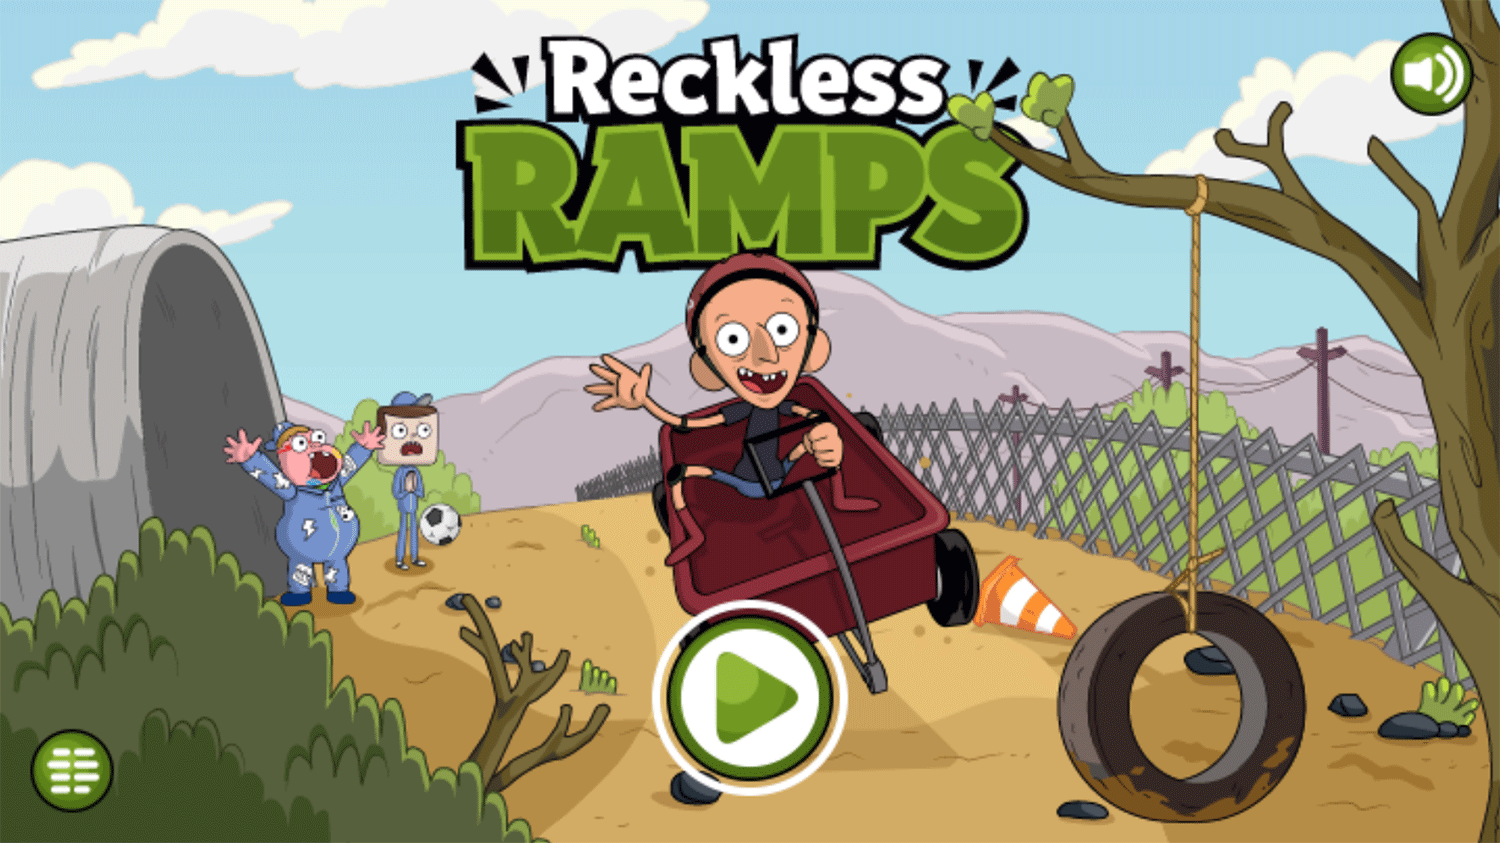 Clarence Reckless Ramps Game Welcome Screen Screenshot.